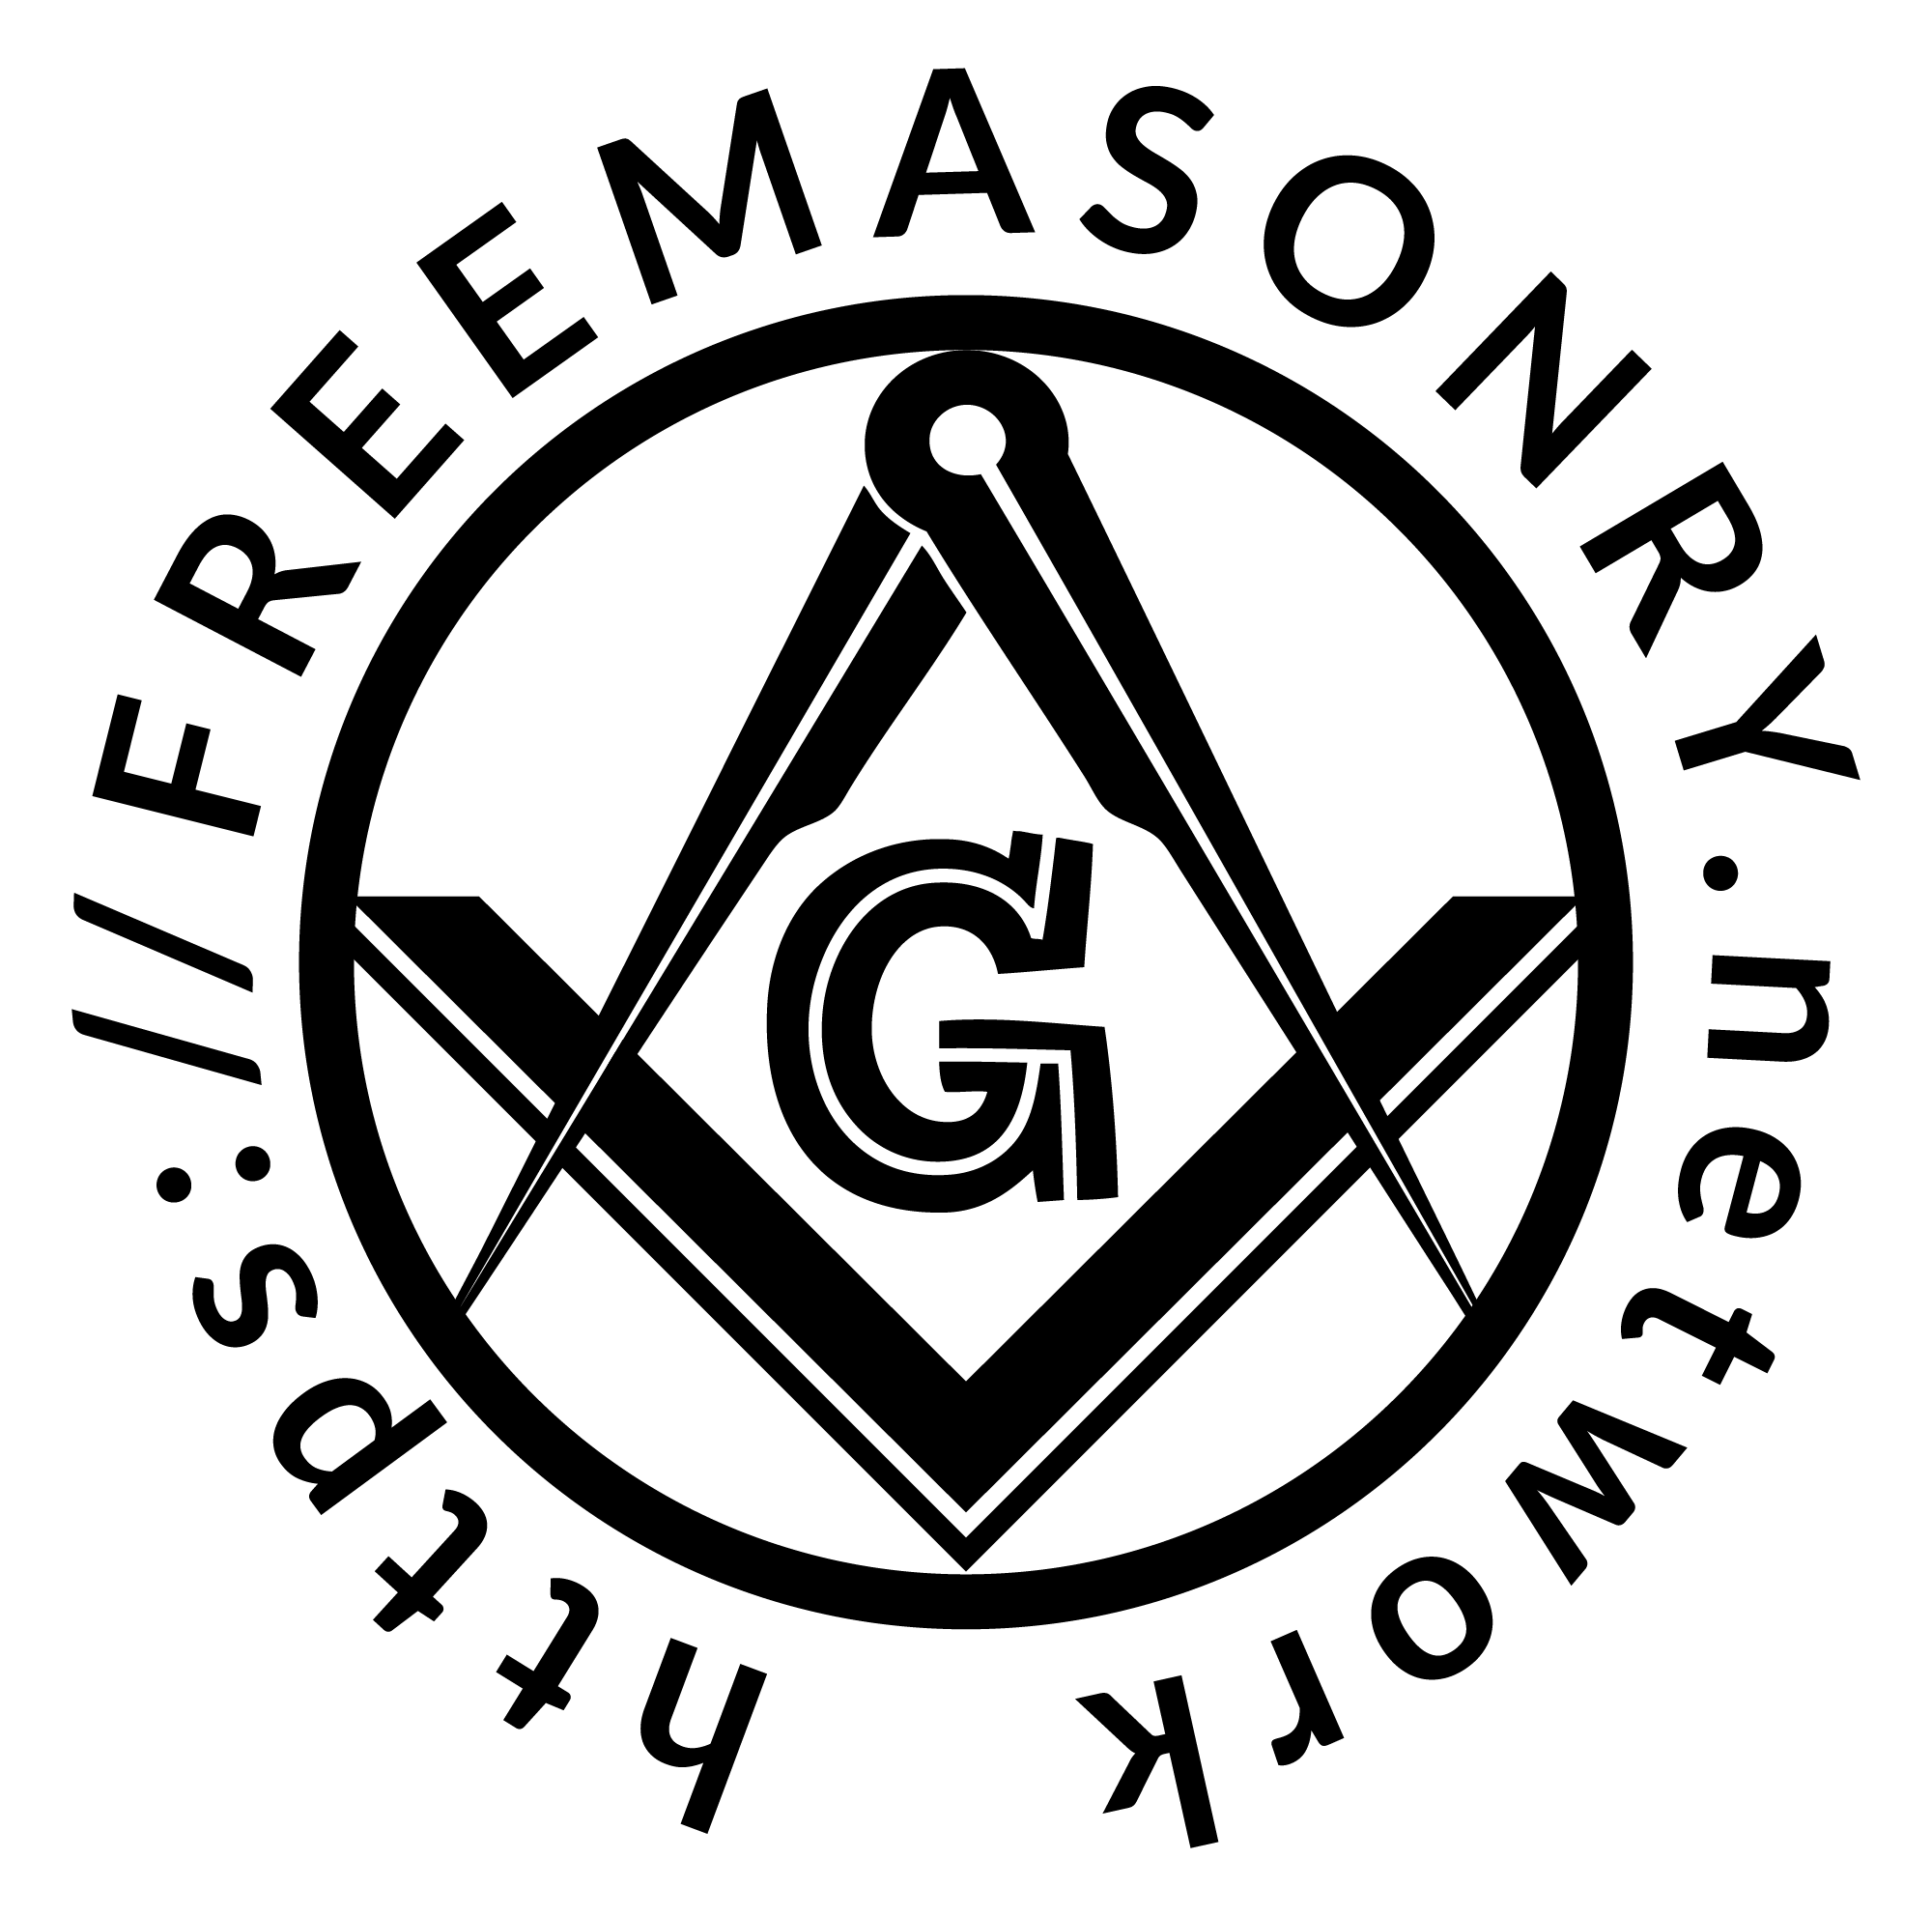 THE MYTHRAS AND FREEMASONRY